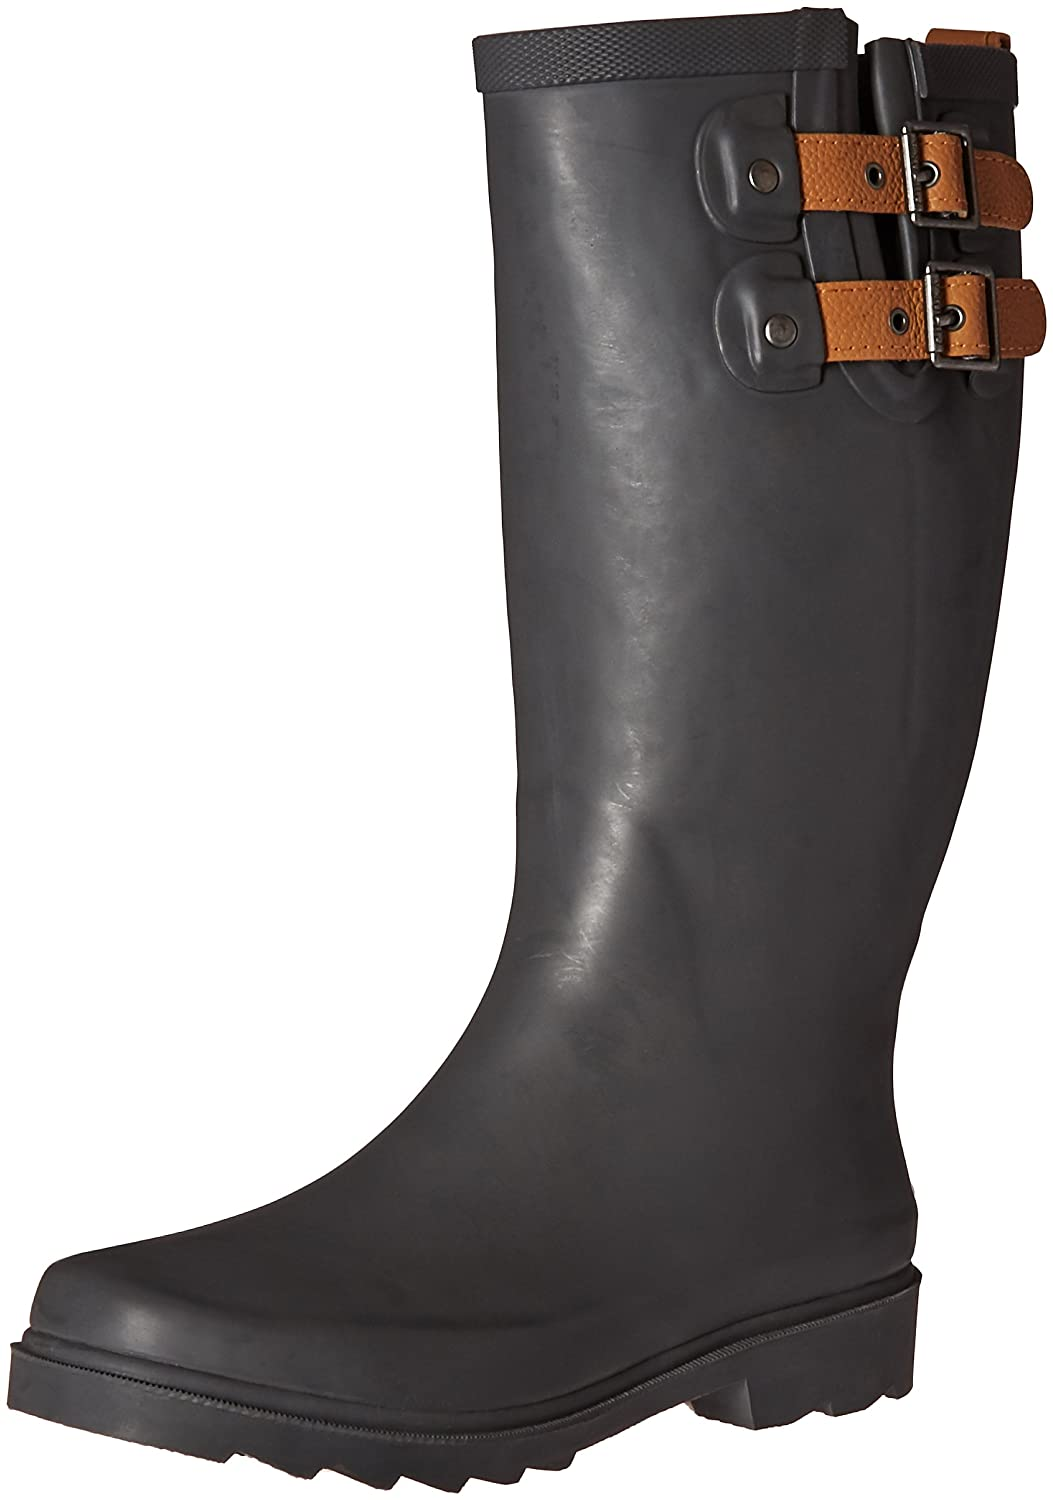 Chooka Women's Tall Rain Boot B01BUDN3B8 8 B(M) US|Dark Grey